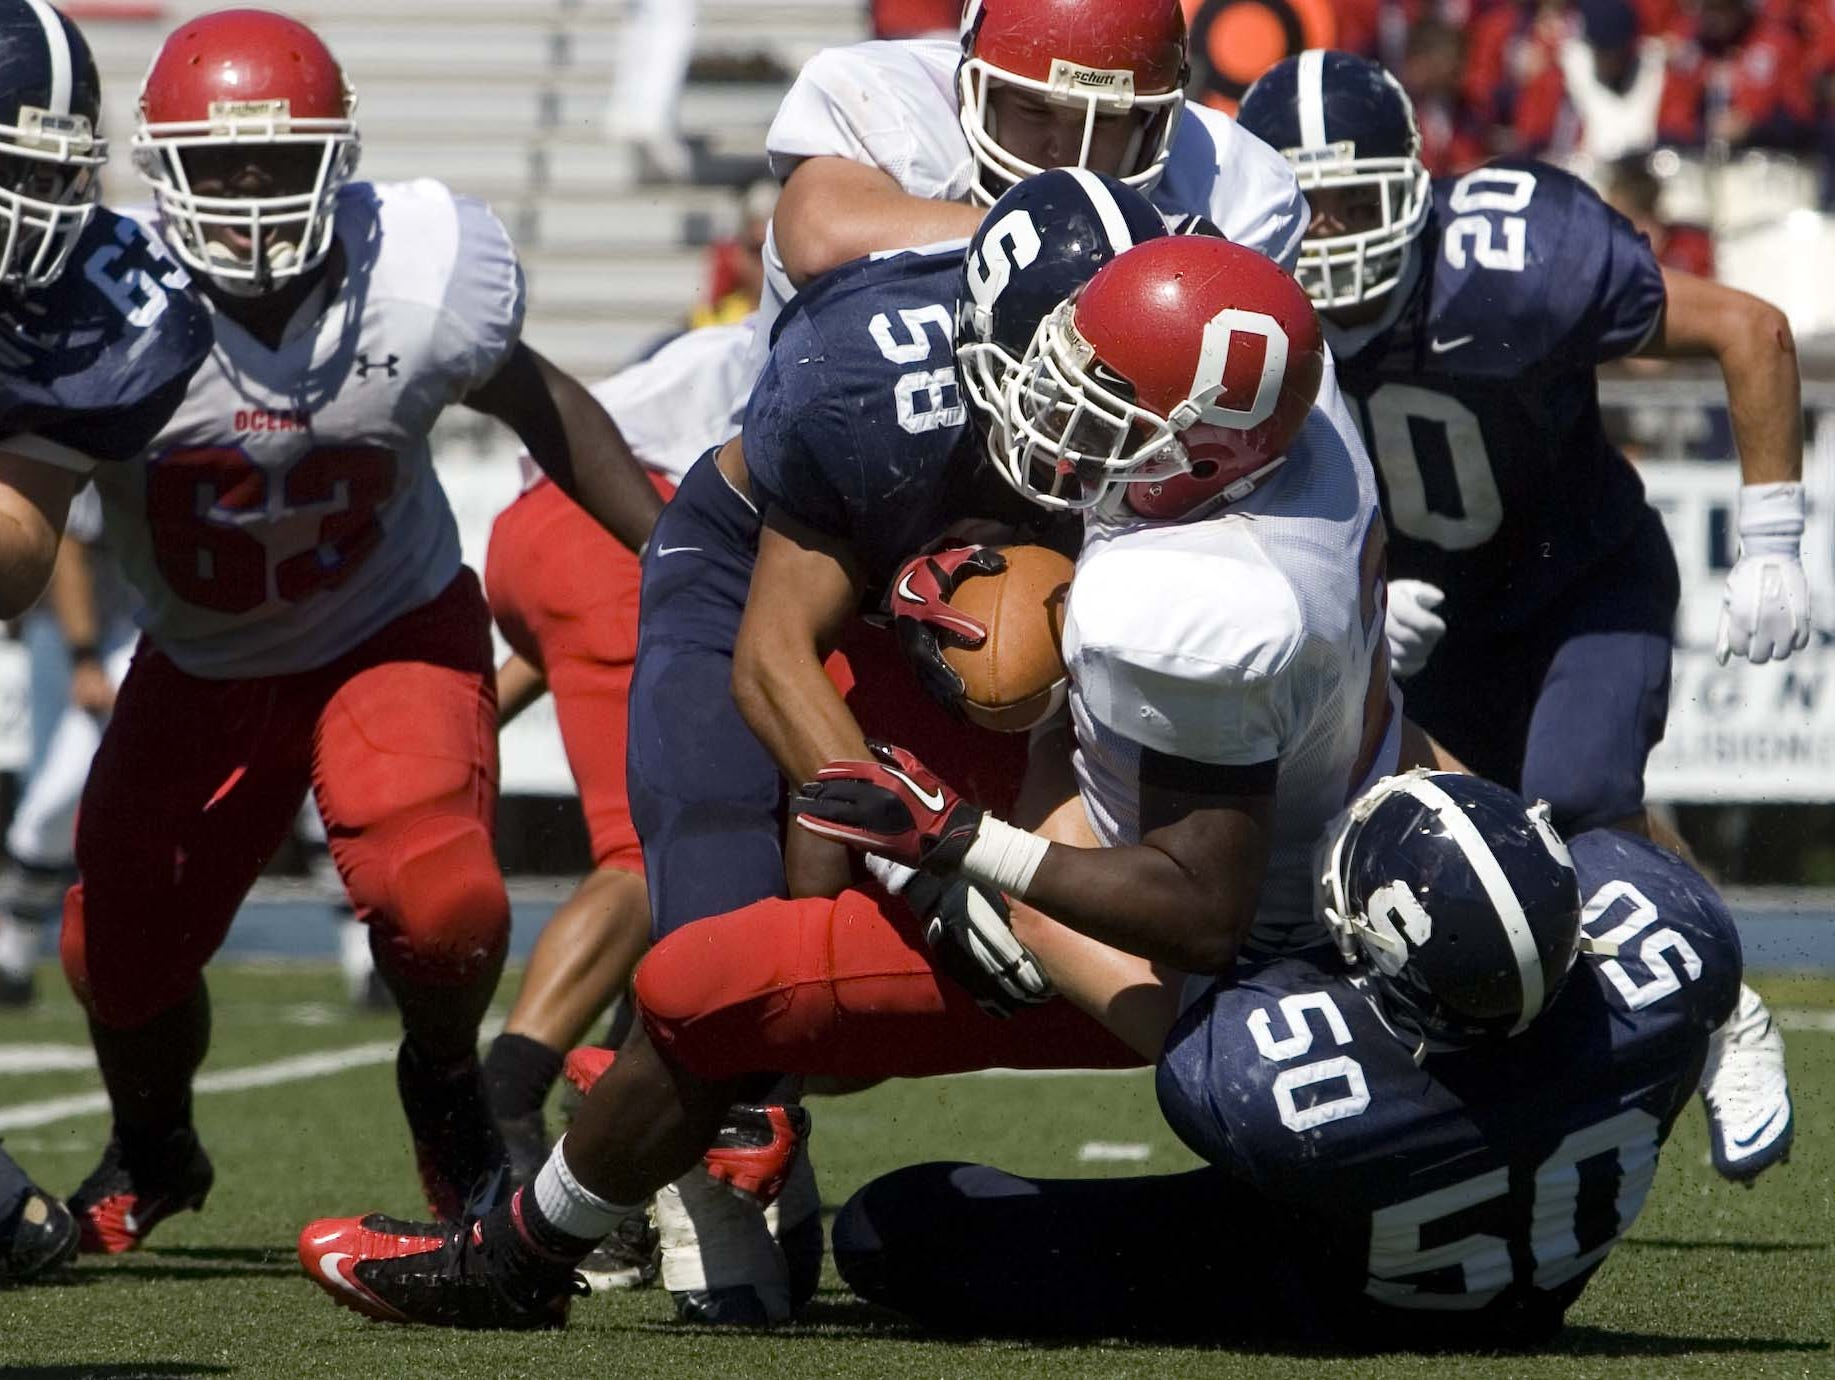 Rick Lovato Jr. (50) helps make a tackle for Middletown South in a 2010 game against Ocean. Lovato, a long snapper for four years at Old Dominion, is hoping for a chance to play in the NFL.